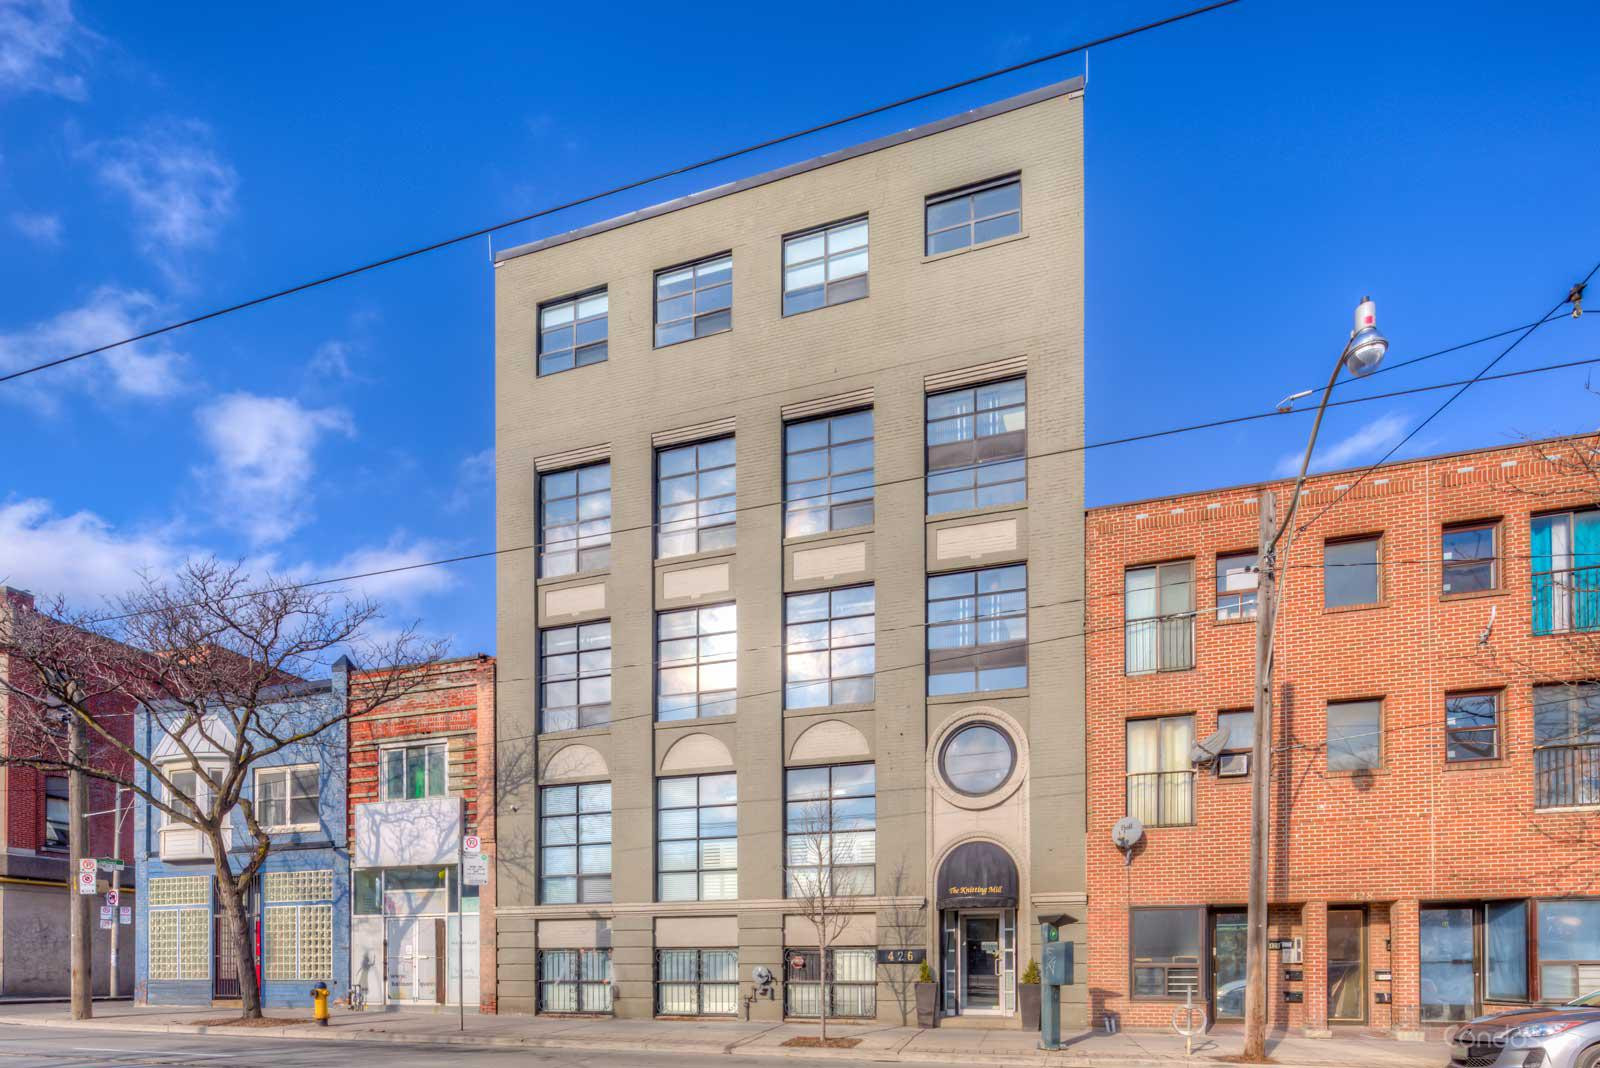 The Knitting Mill Lofts at 426 Queen St E, Toronto 0